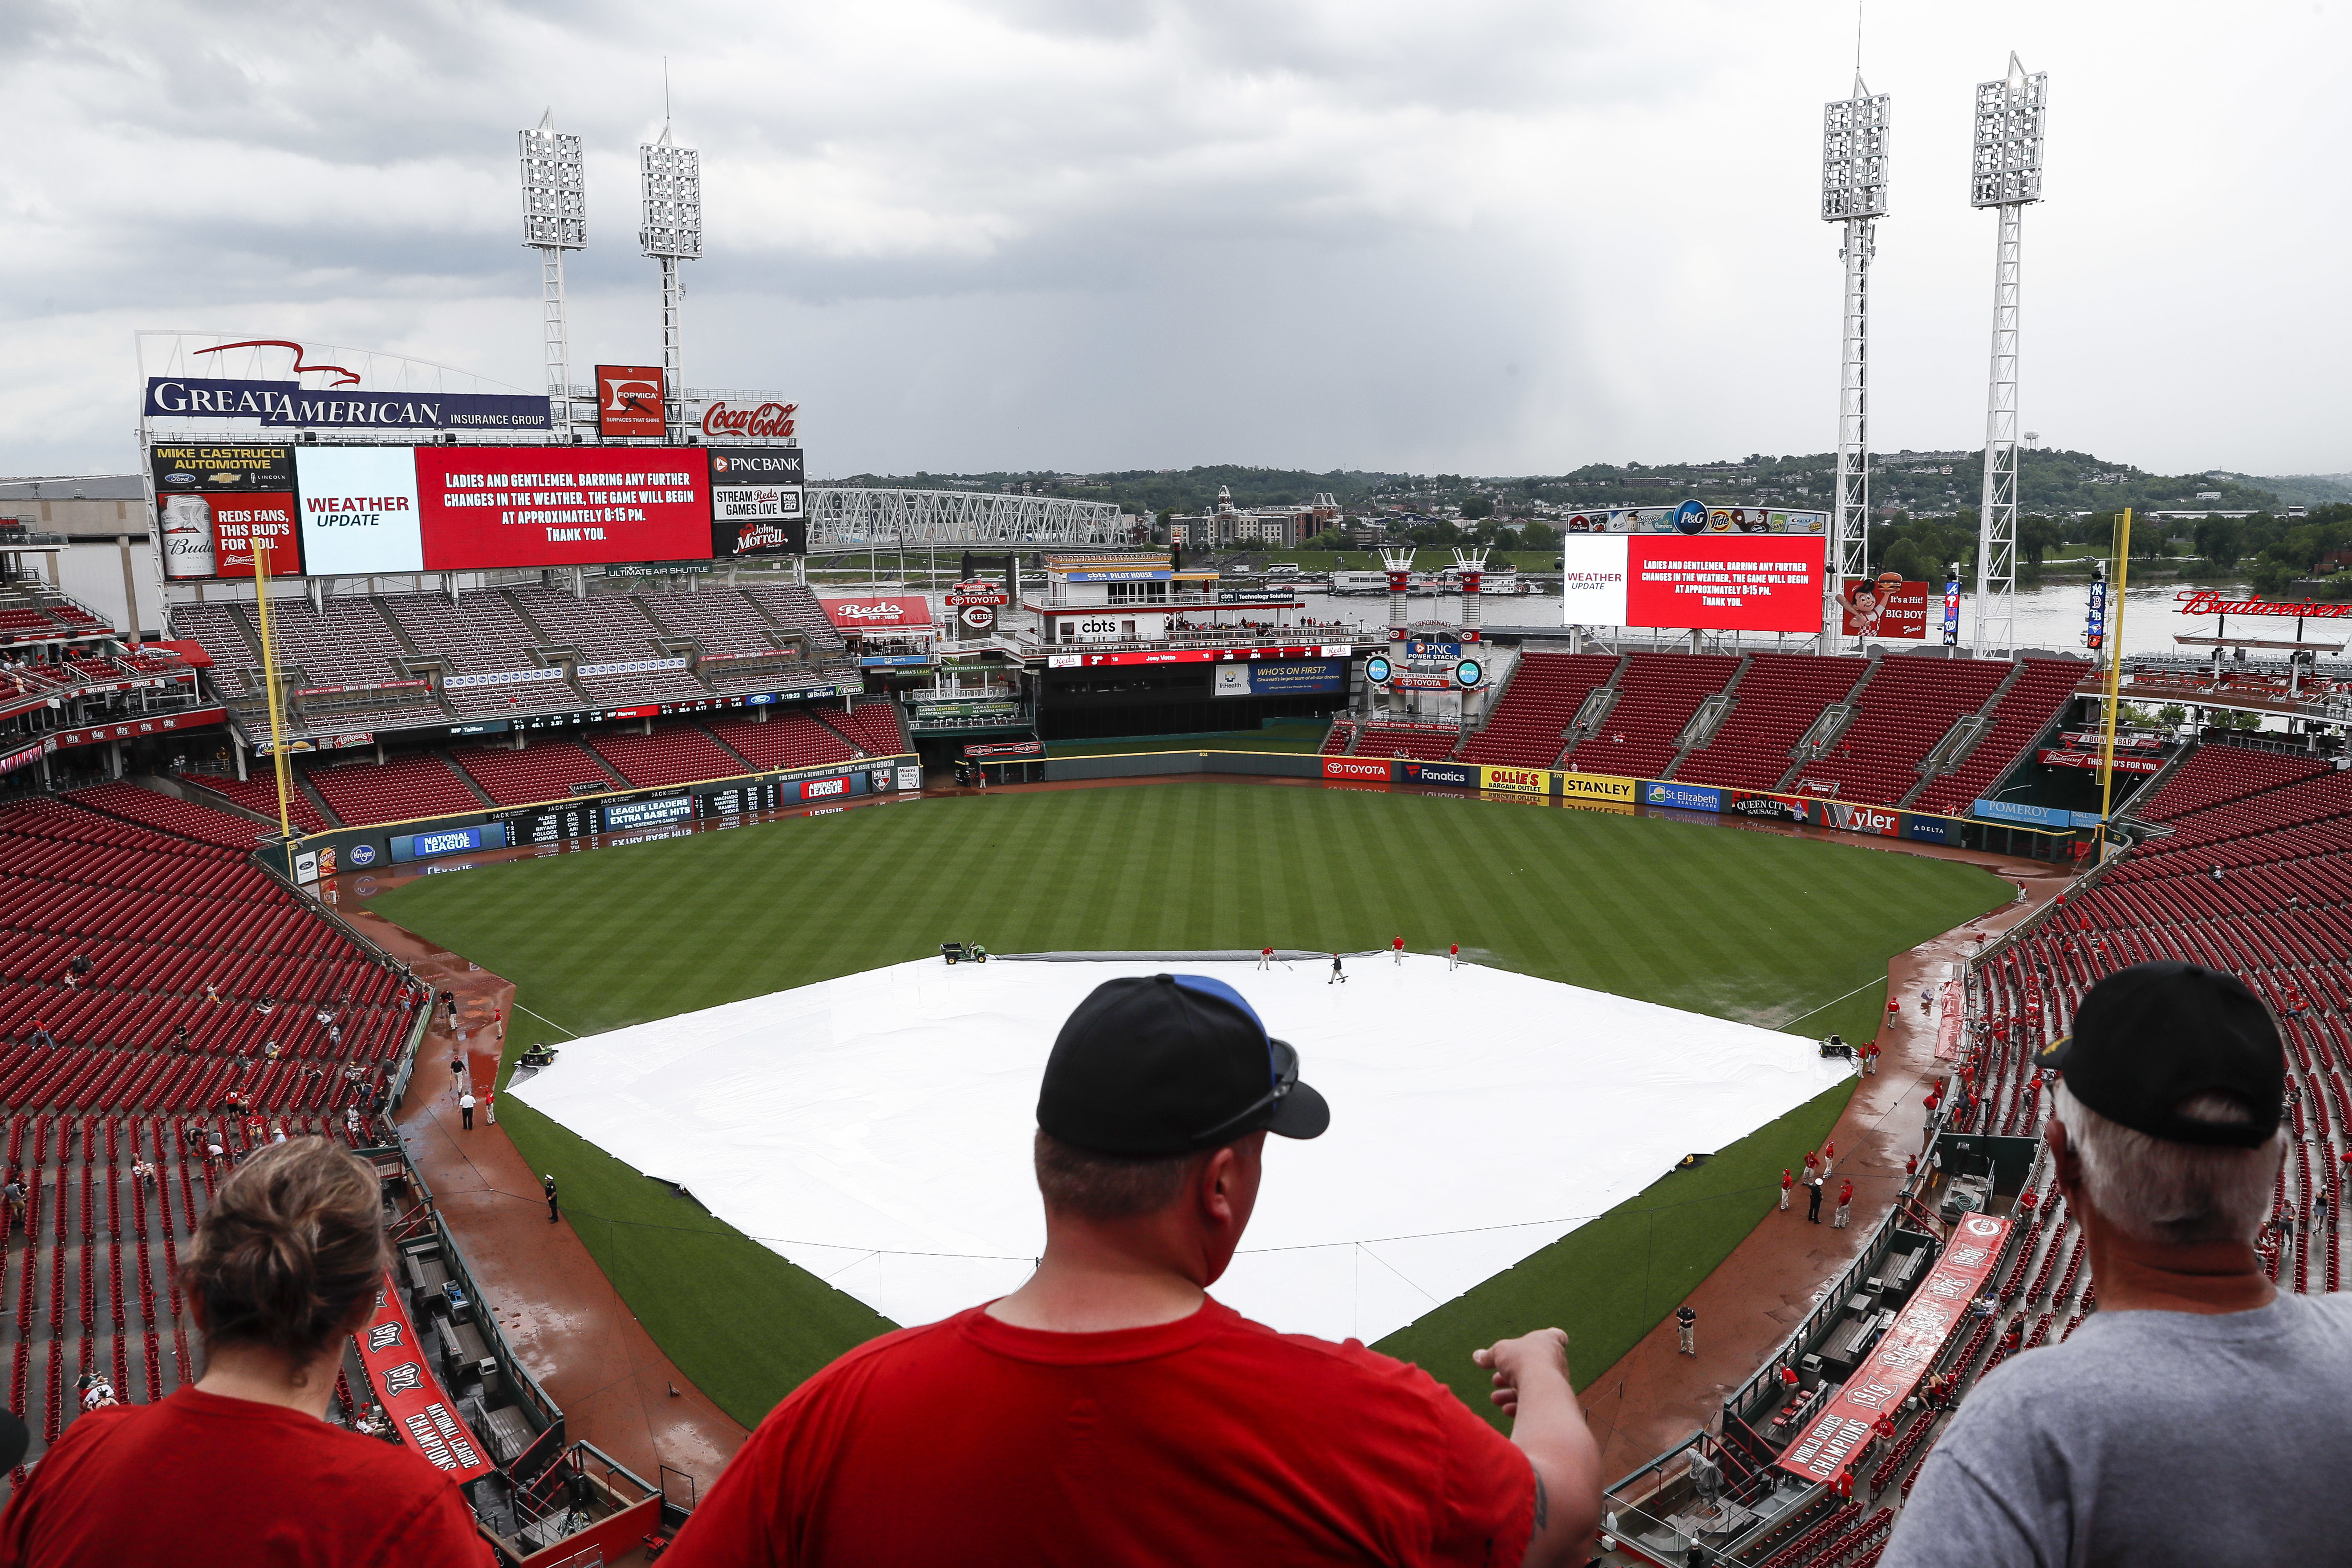 Fans wait in the stands during a rain delay before a baseball game between the Cincinnati Reds and the Pittsburgh Pirates, Tuesday, May 22, 2018, in Cincinnati. (AP Photo/John Minchillo)